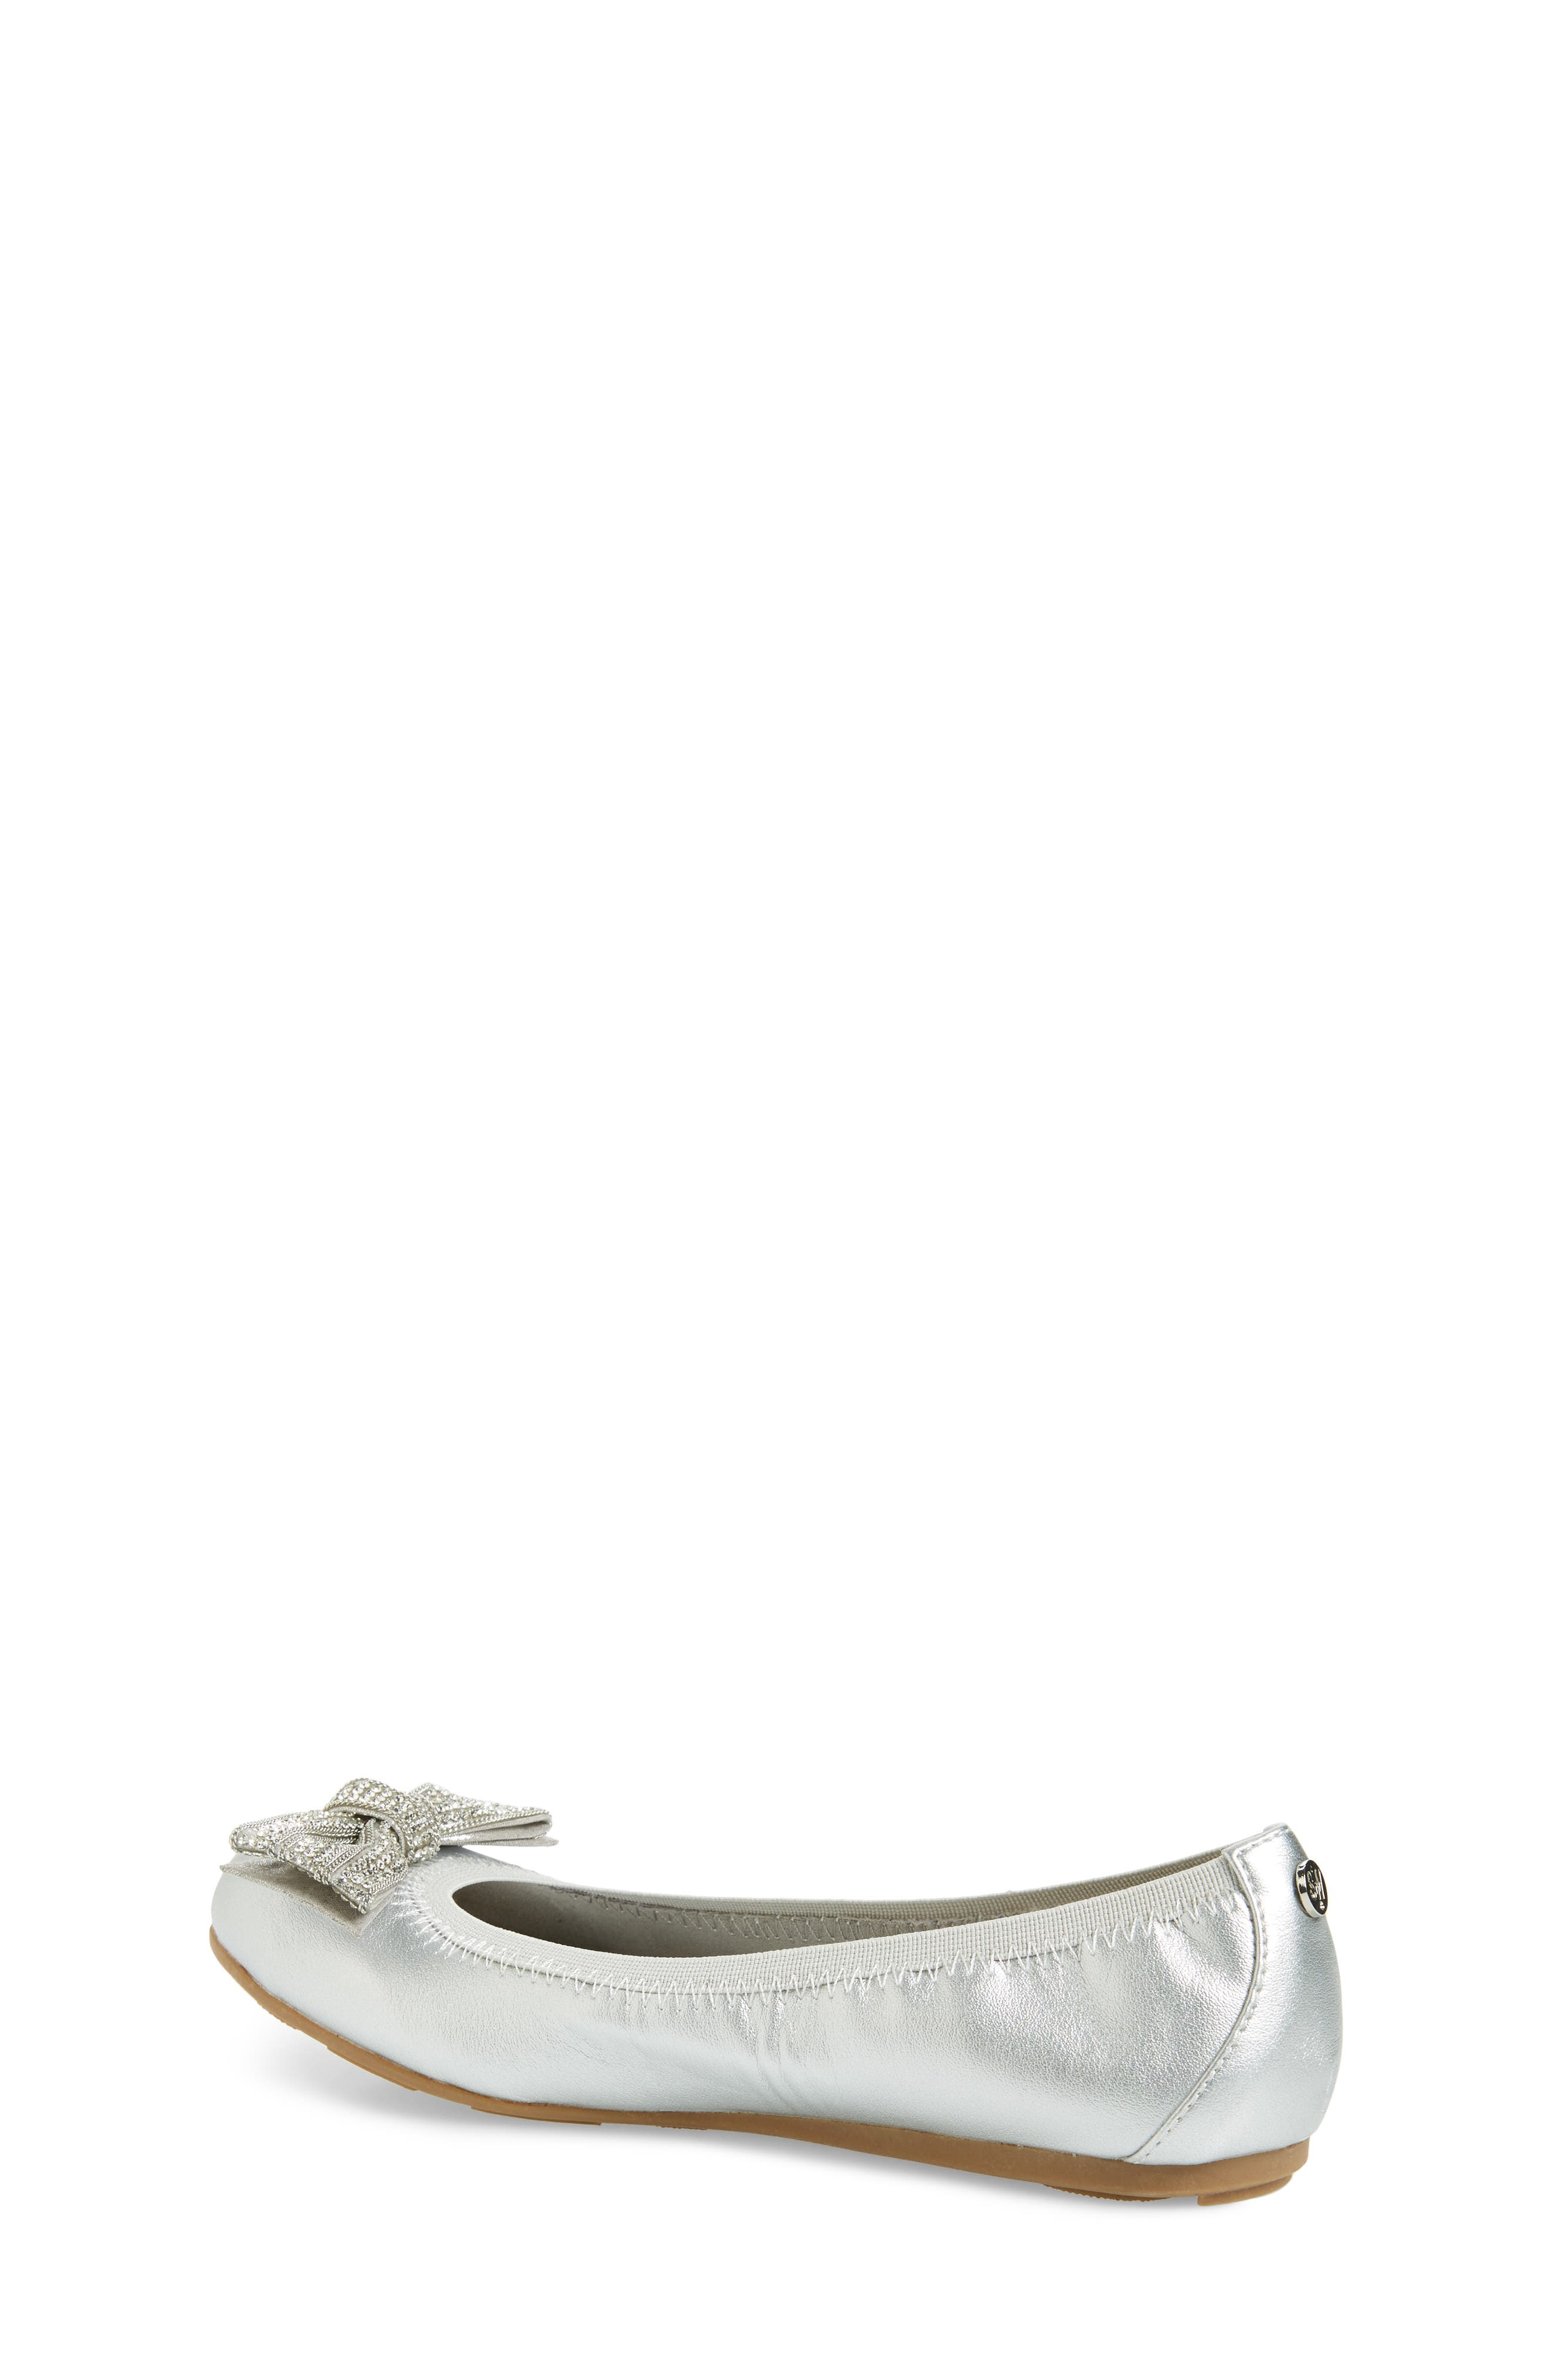 Fannie Embellished Bow Ballet Flat,                             Alternate thumbnail 2, color,                             Silver